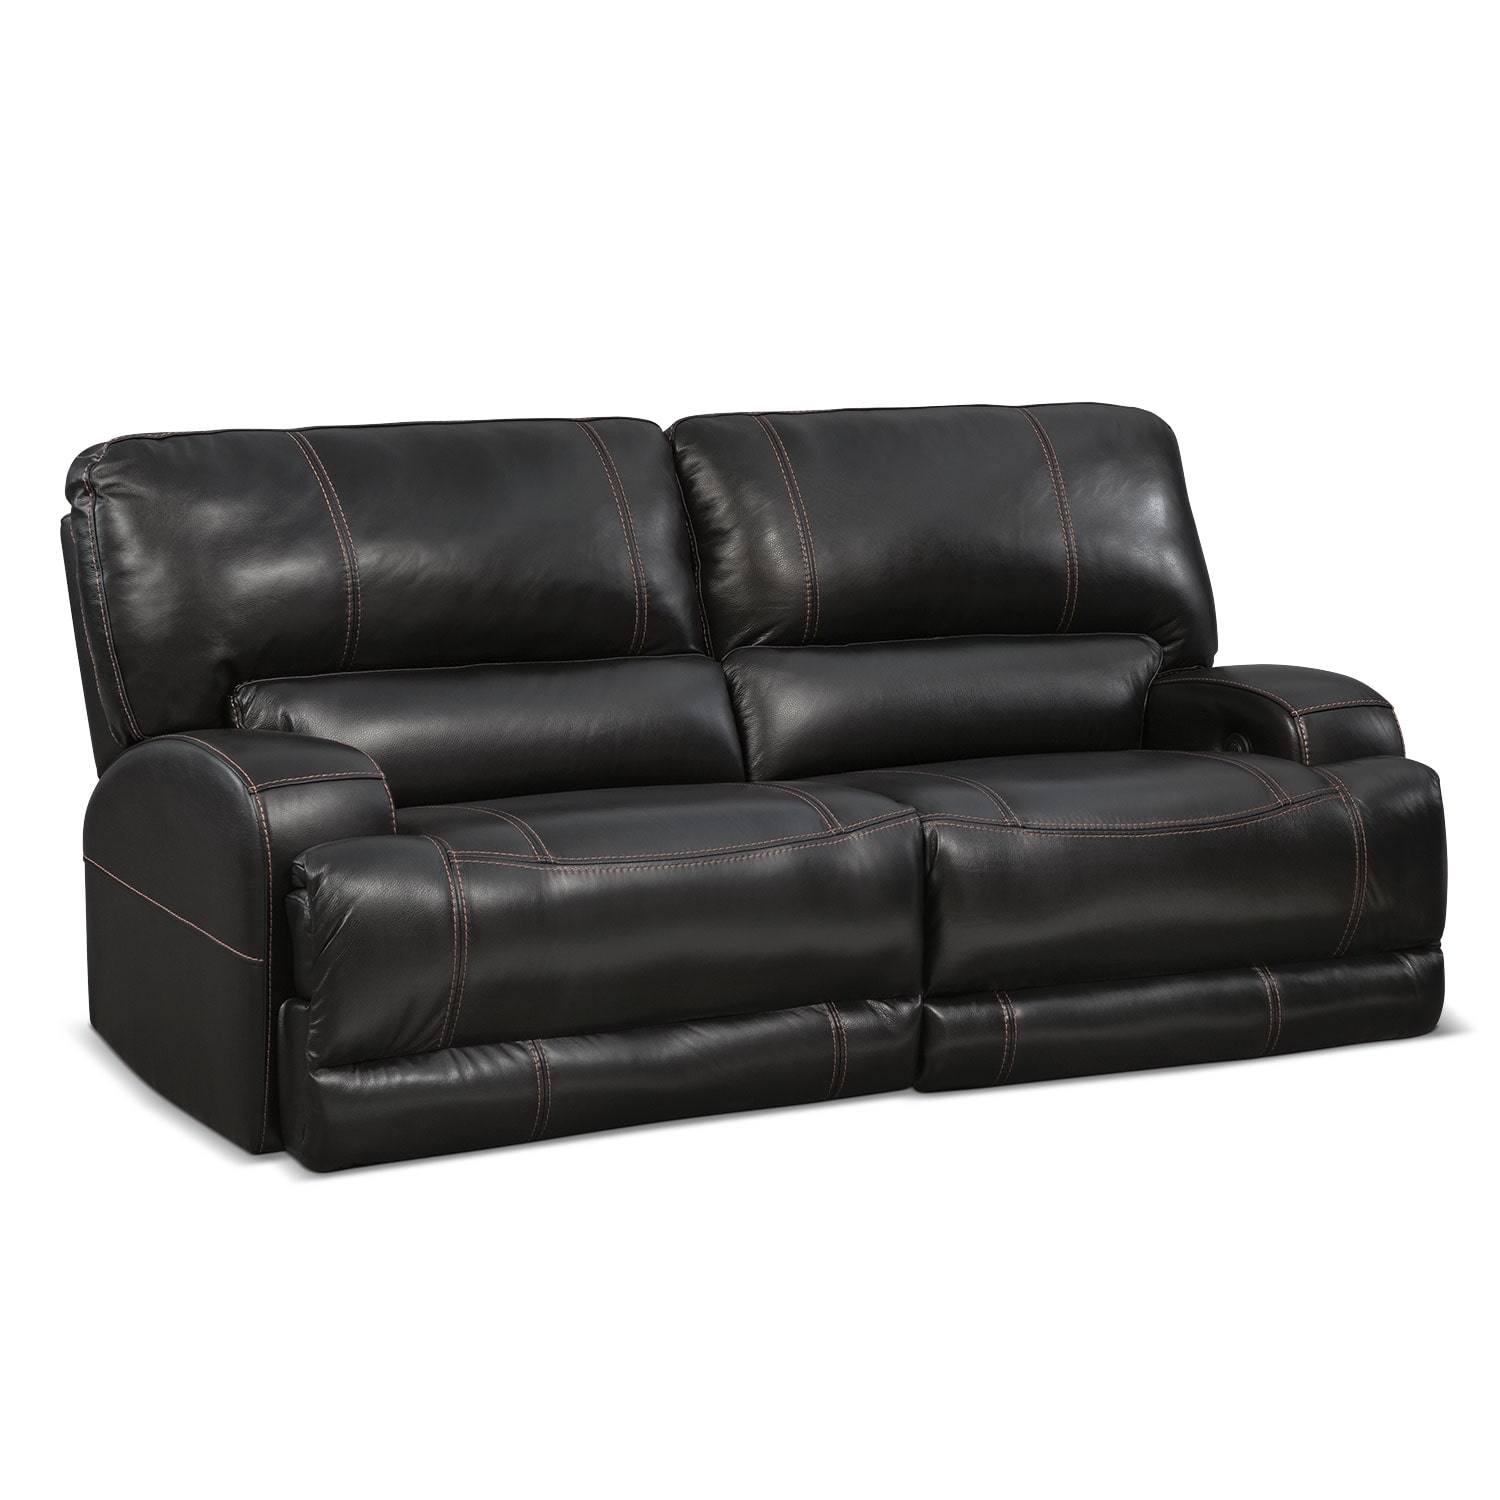 Living Room Furniture - Barton Power Power Reclining Sofa - Black